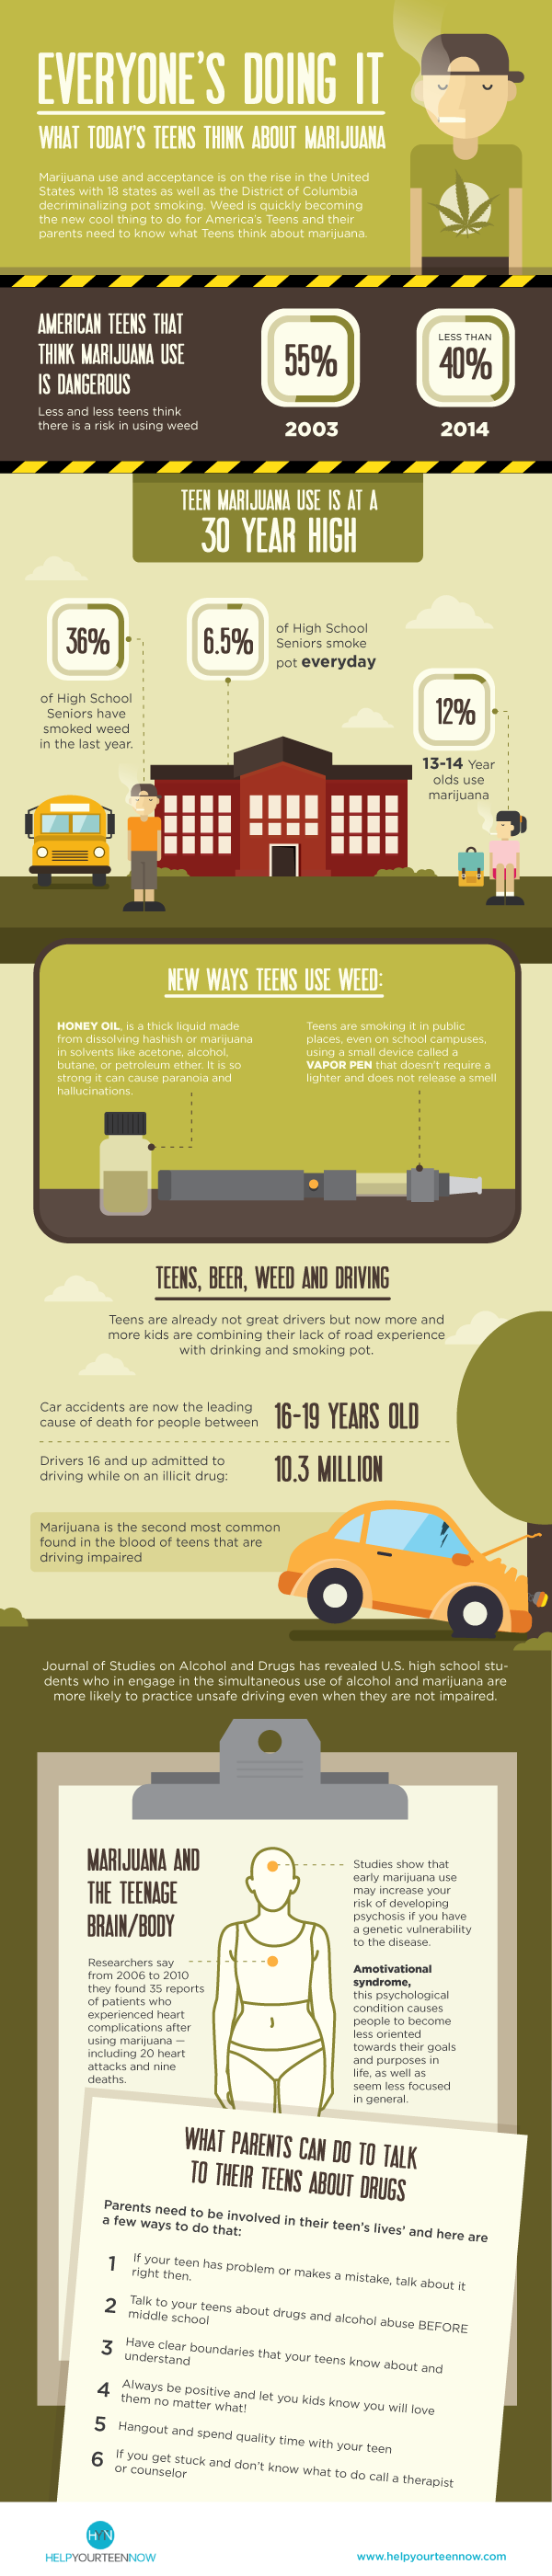 Teen-Marijuana-Use-(Infographic)